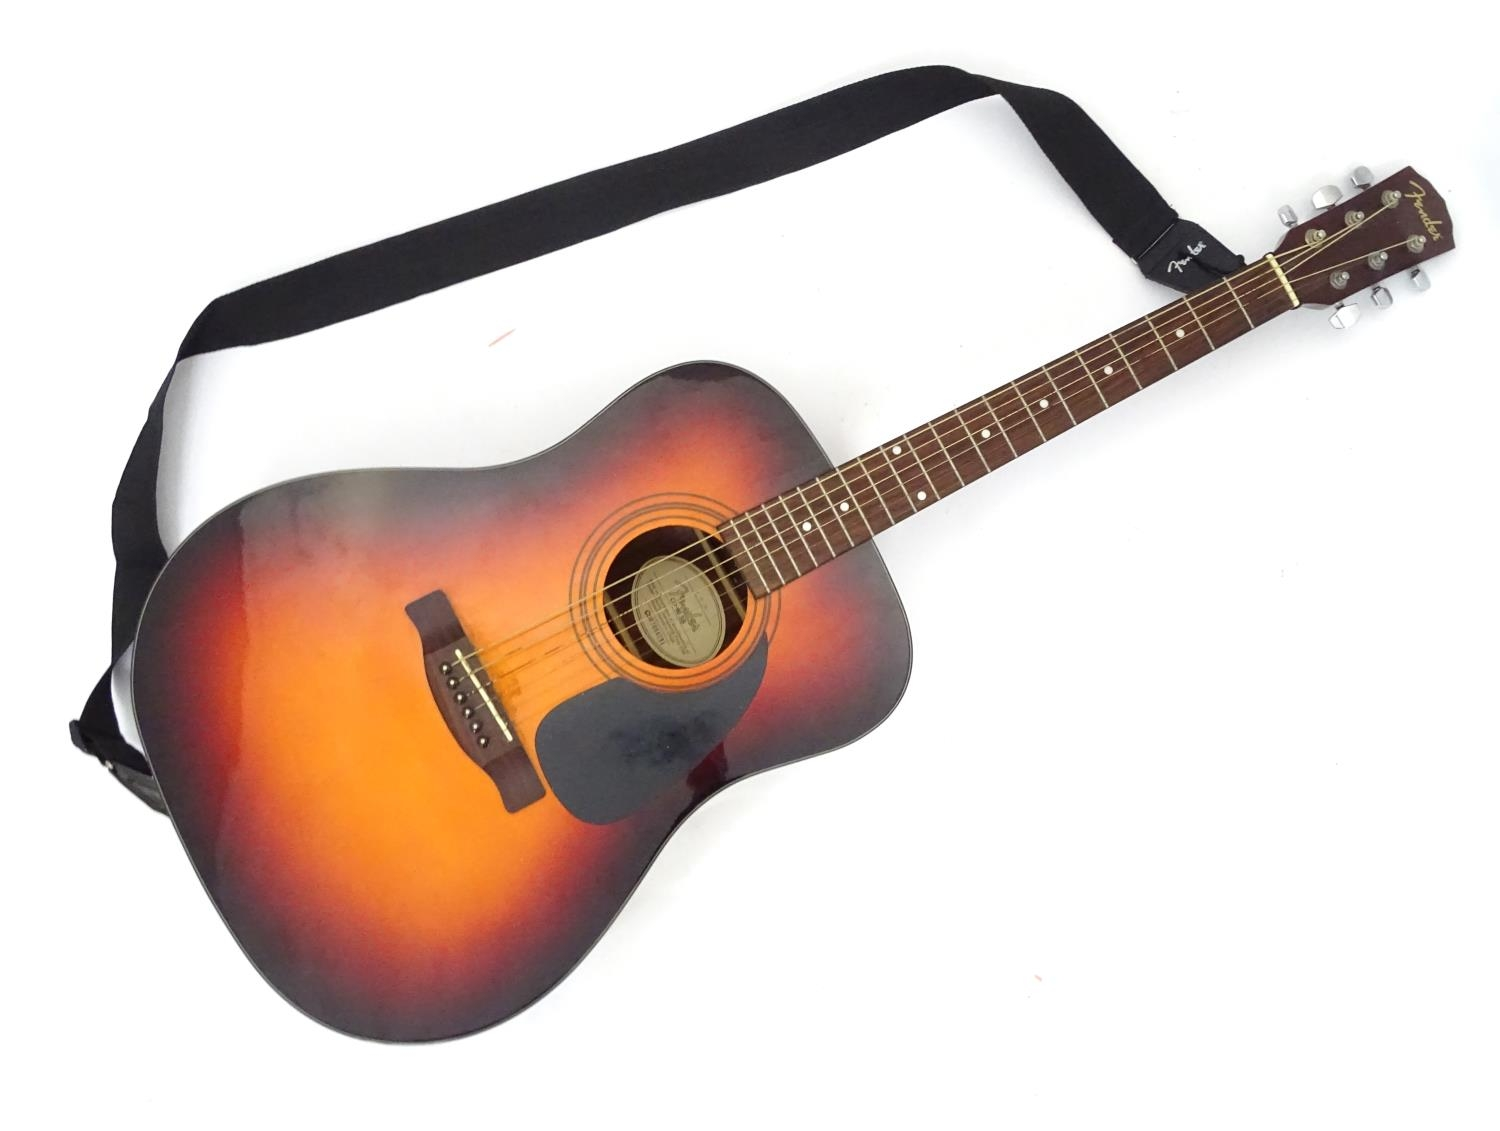 A Fender CD-60 SB acoustic guitar Please Note - we do not make reference to the condition of lots